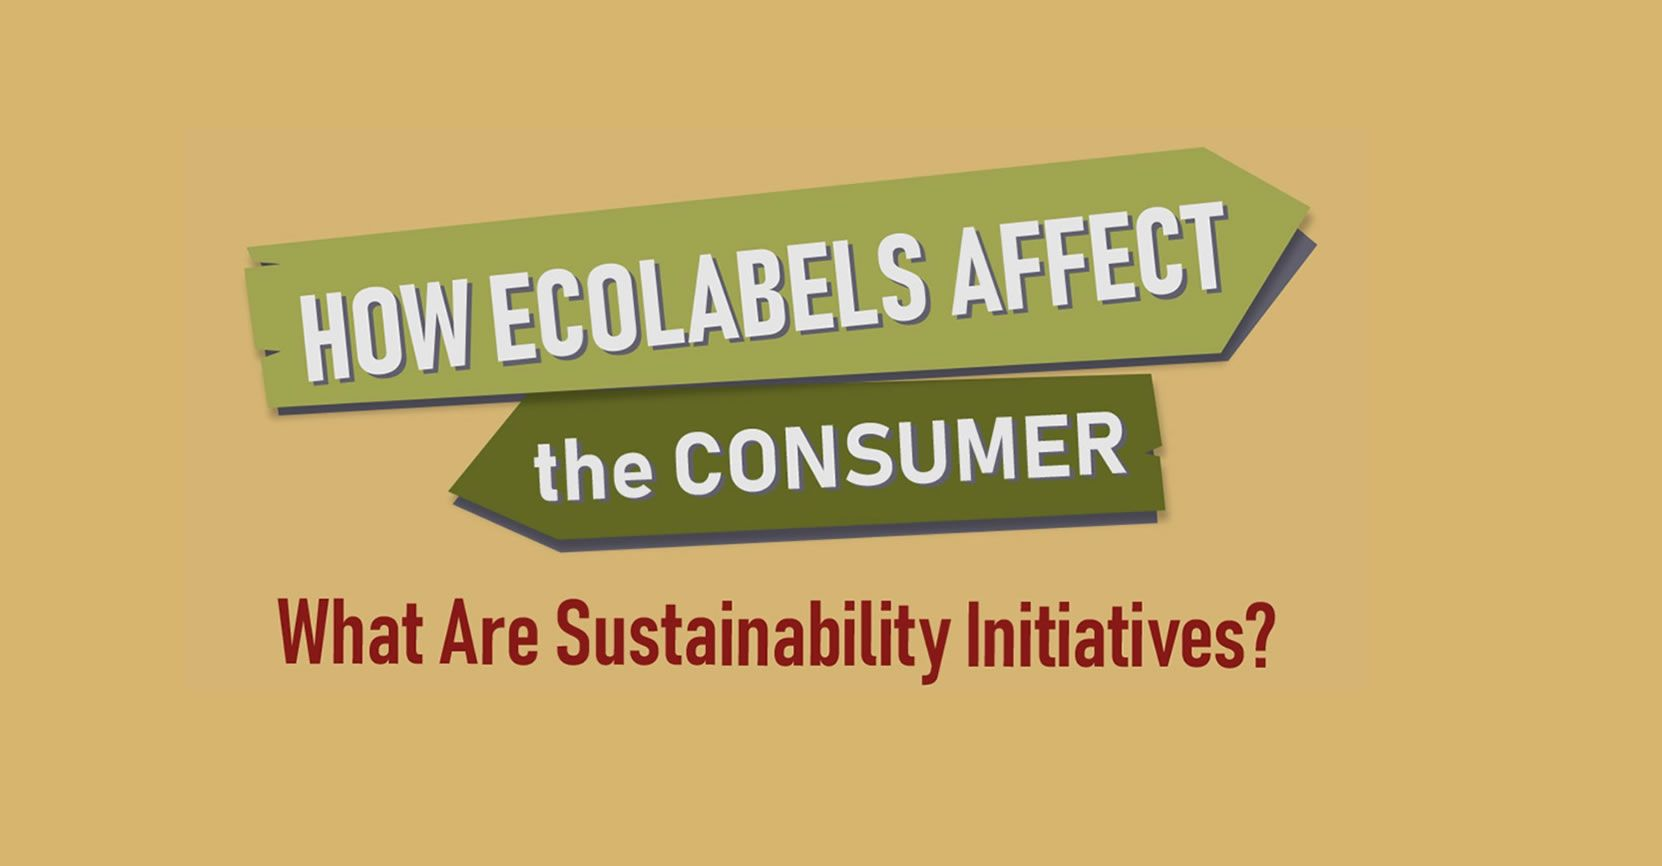 How Eco Labels Affect the Consumer